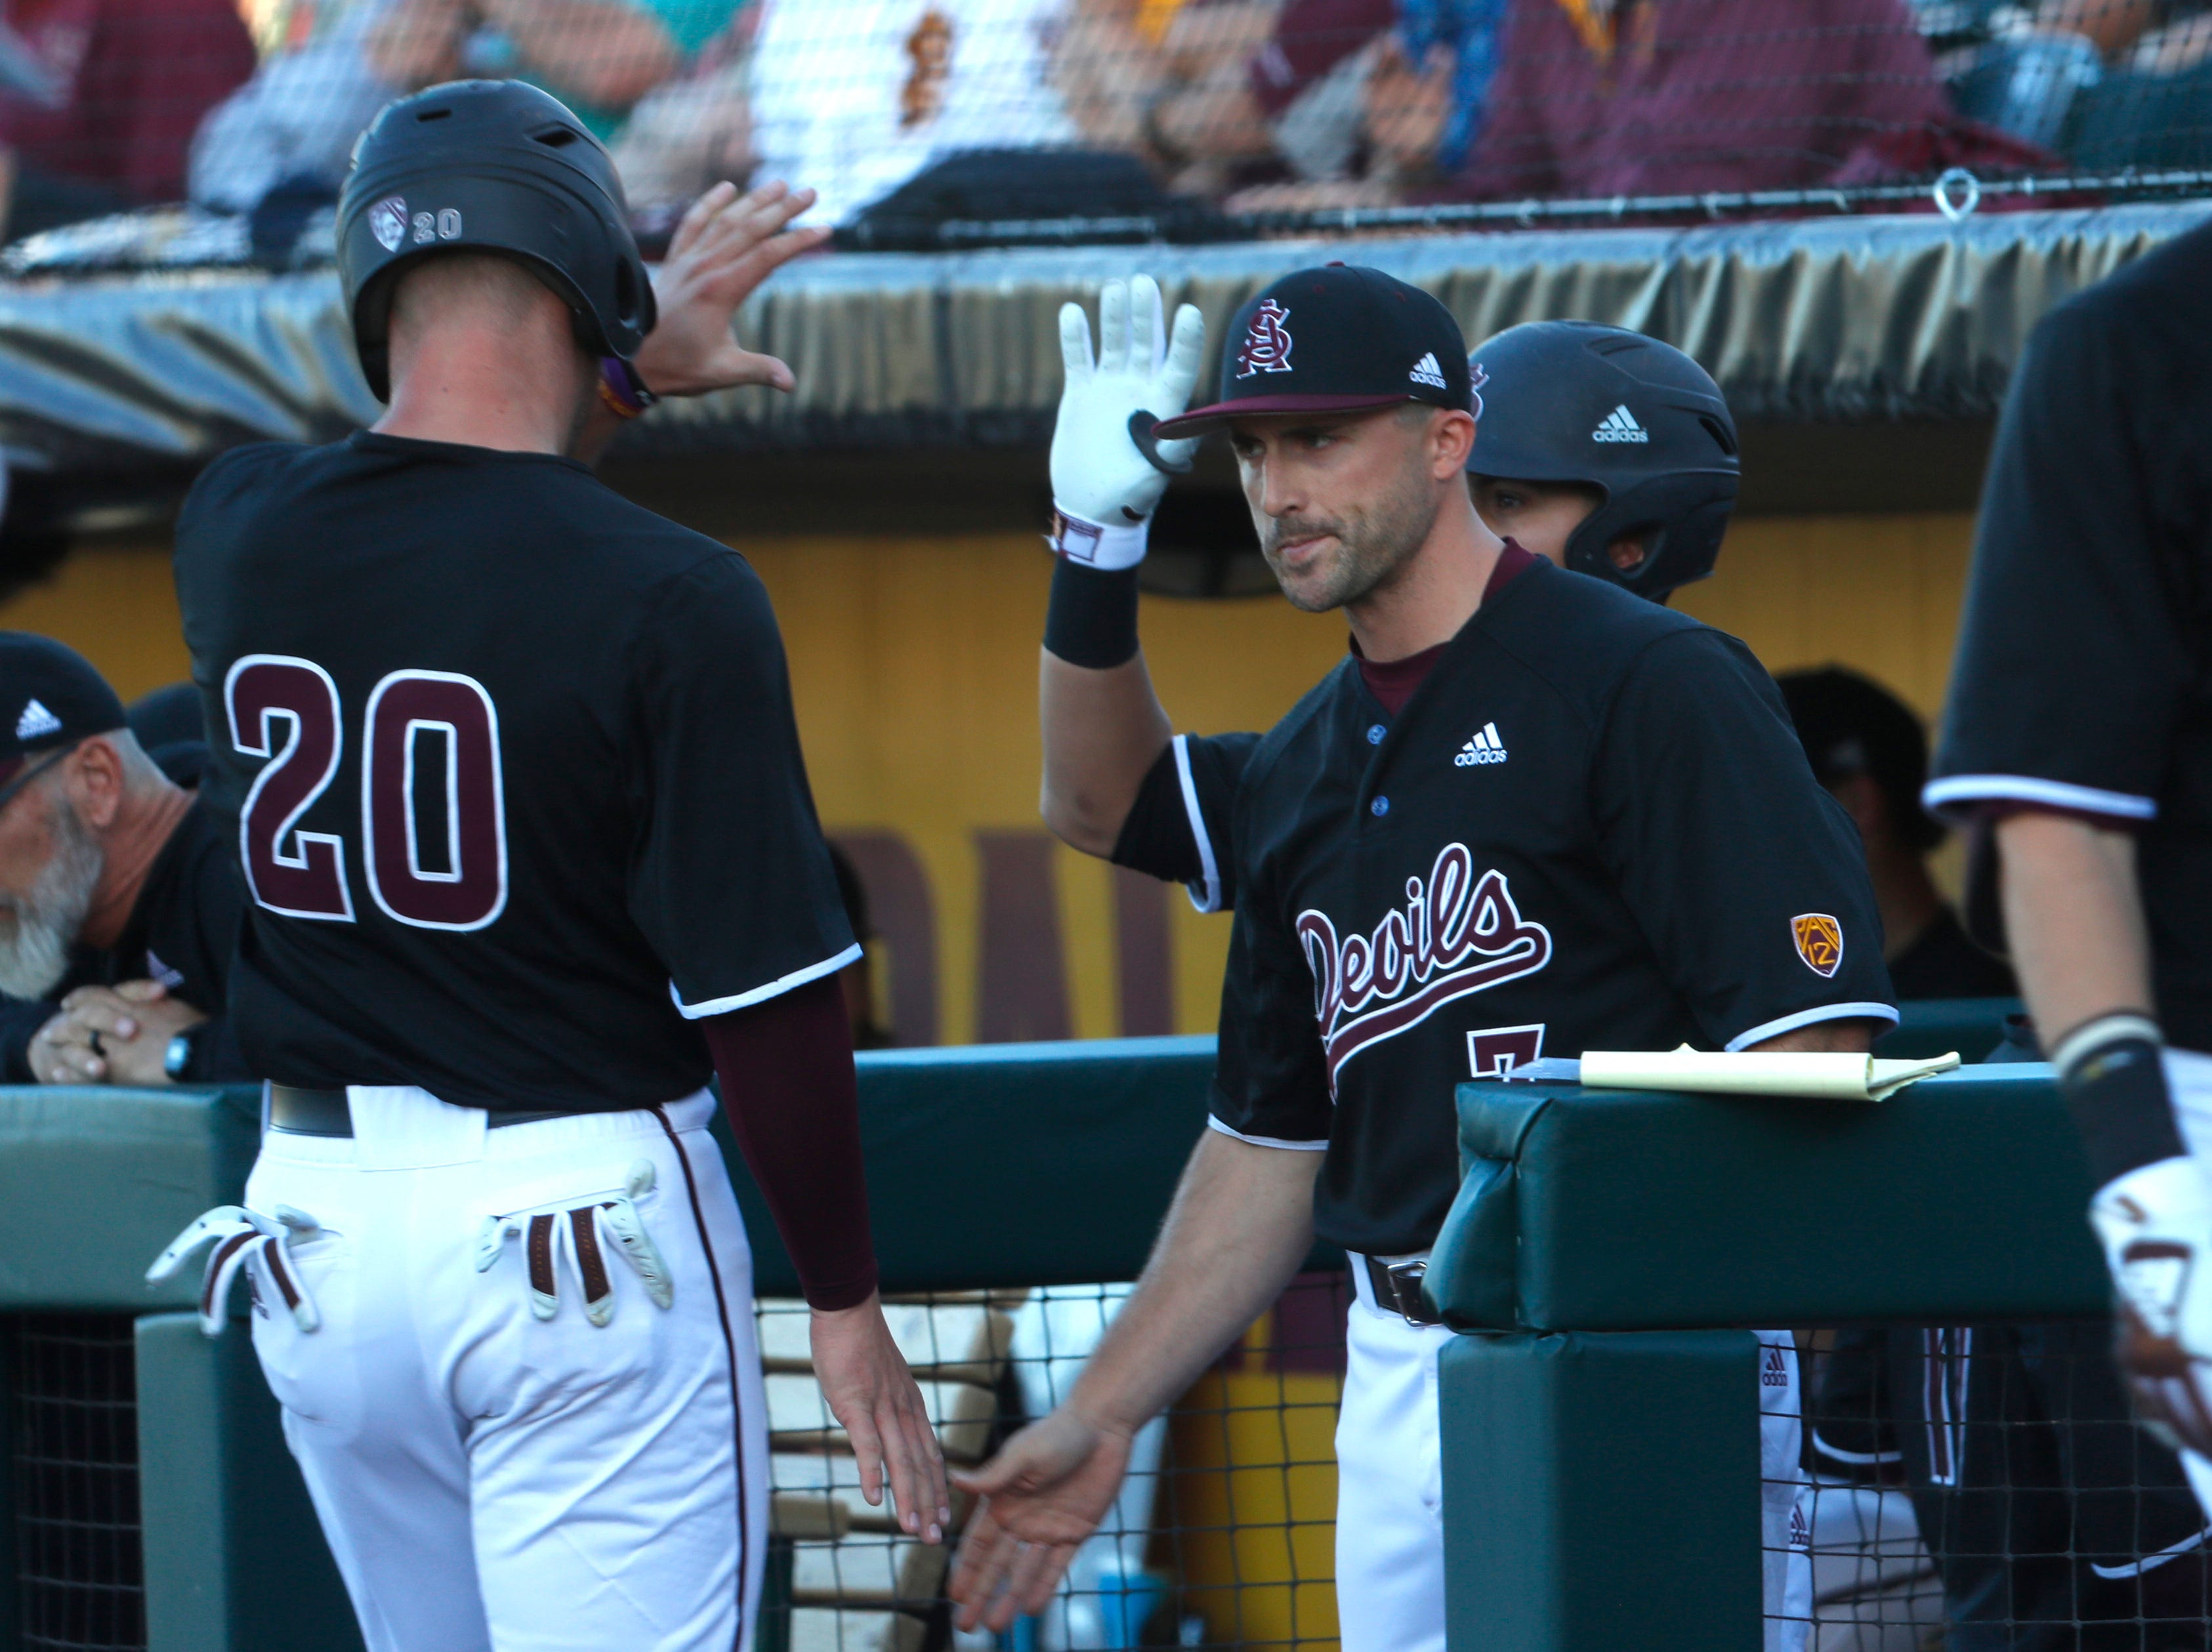 ASU's hitting coach Michael Early (R) high-fives Spencer Torkelson (20) after Torkelson scored in the first inning against Stanford at Phoenix Municipal Stadium in Phoenix, Ariz. on May 23, 2019.